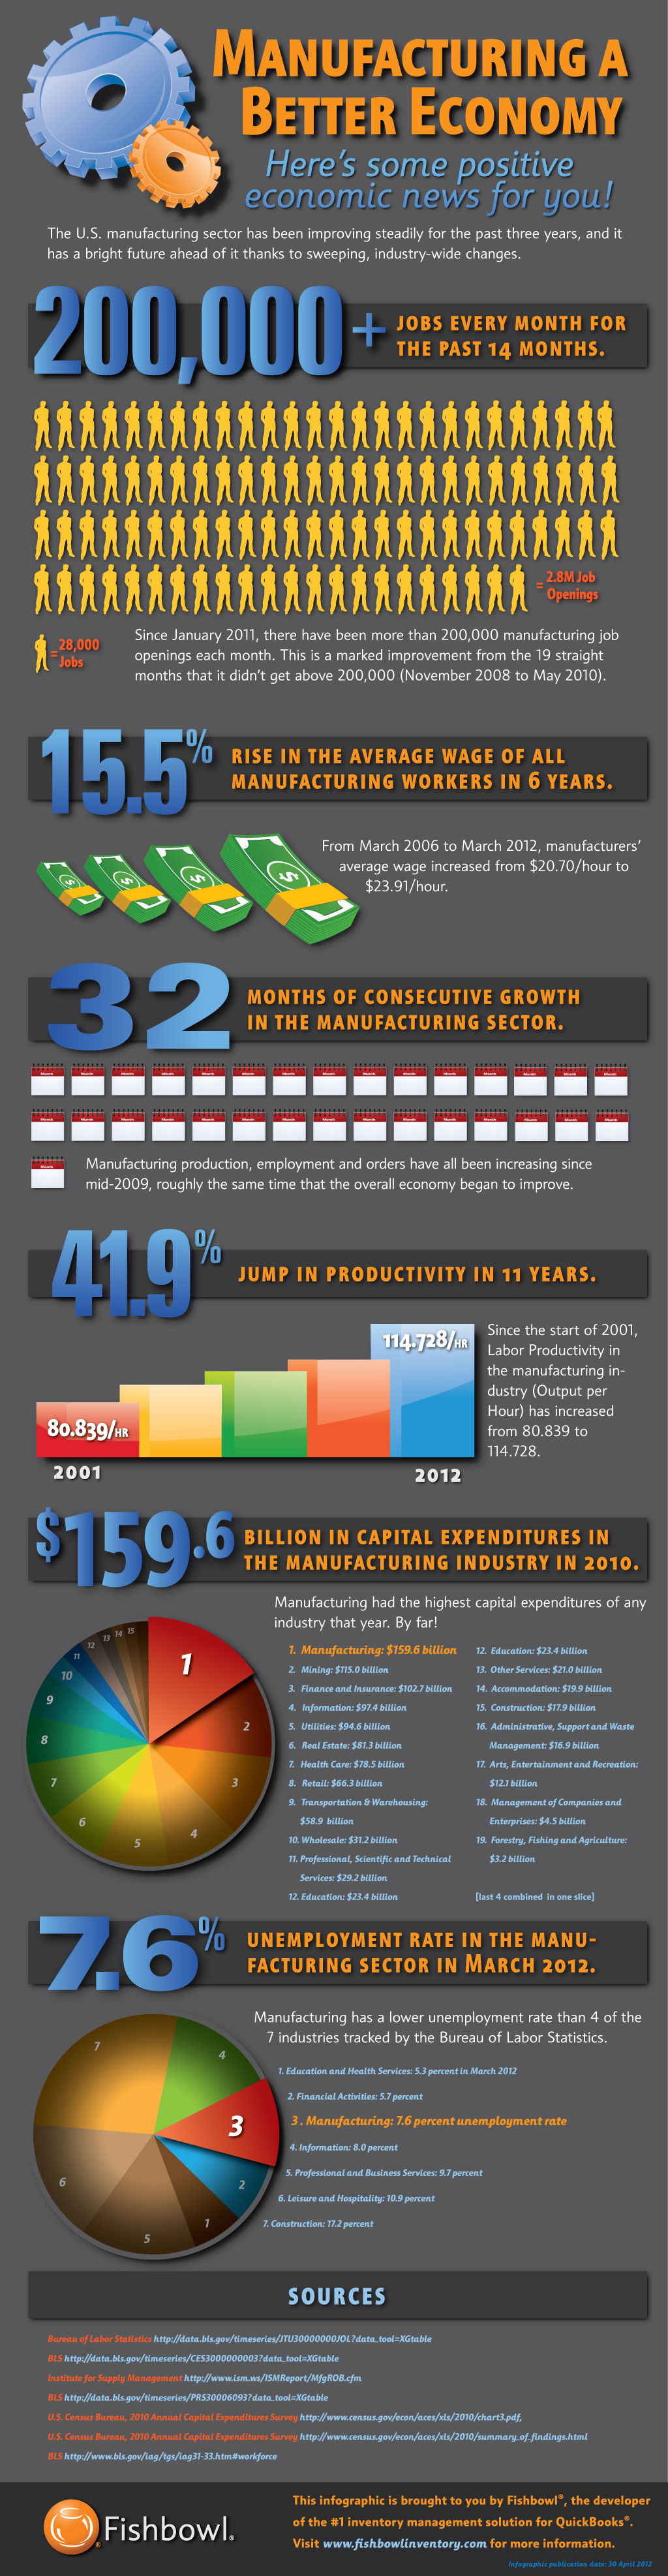 The manufacturing industry is enjoying a boom in employment, productivity and more thanks to advanced software and other improvements.